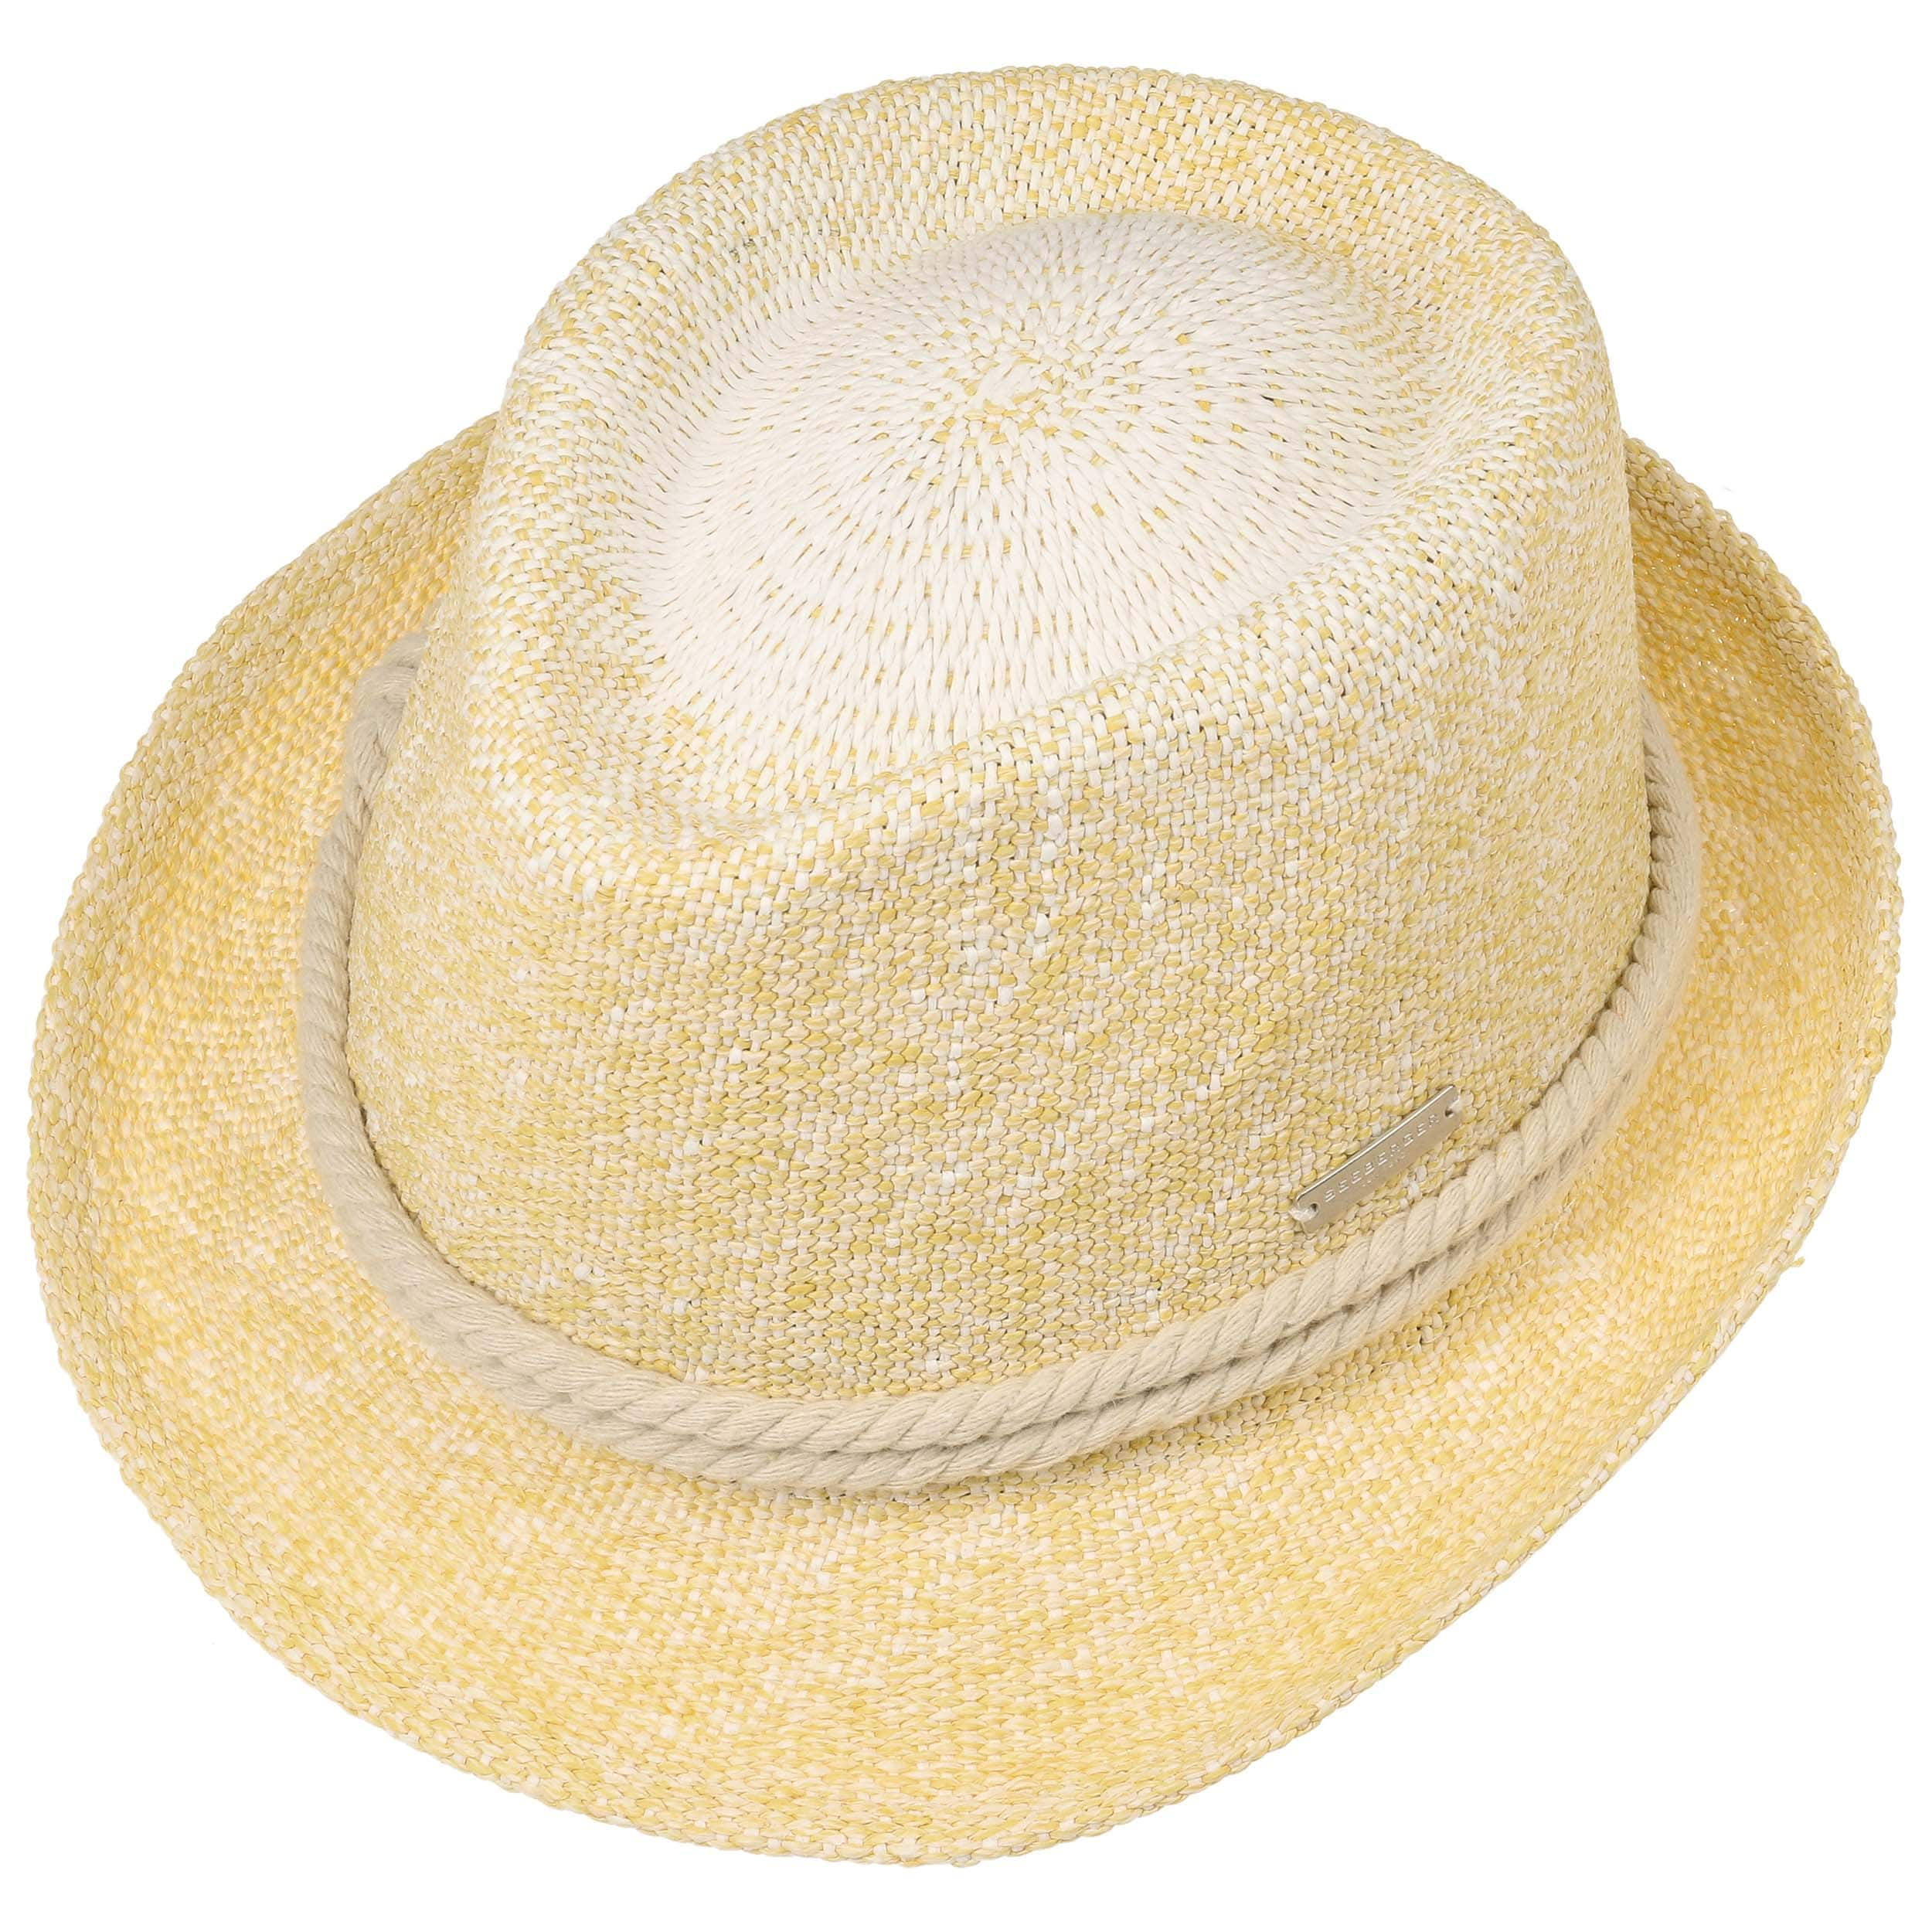 55edf638 ... Nicole Twotone Trilby Straw Hat by Seeberger - yellow-mottled 1 ...